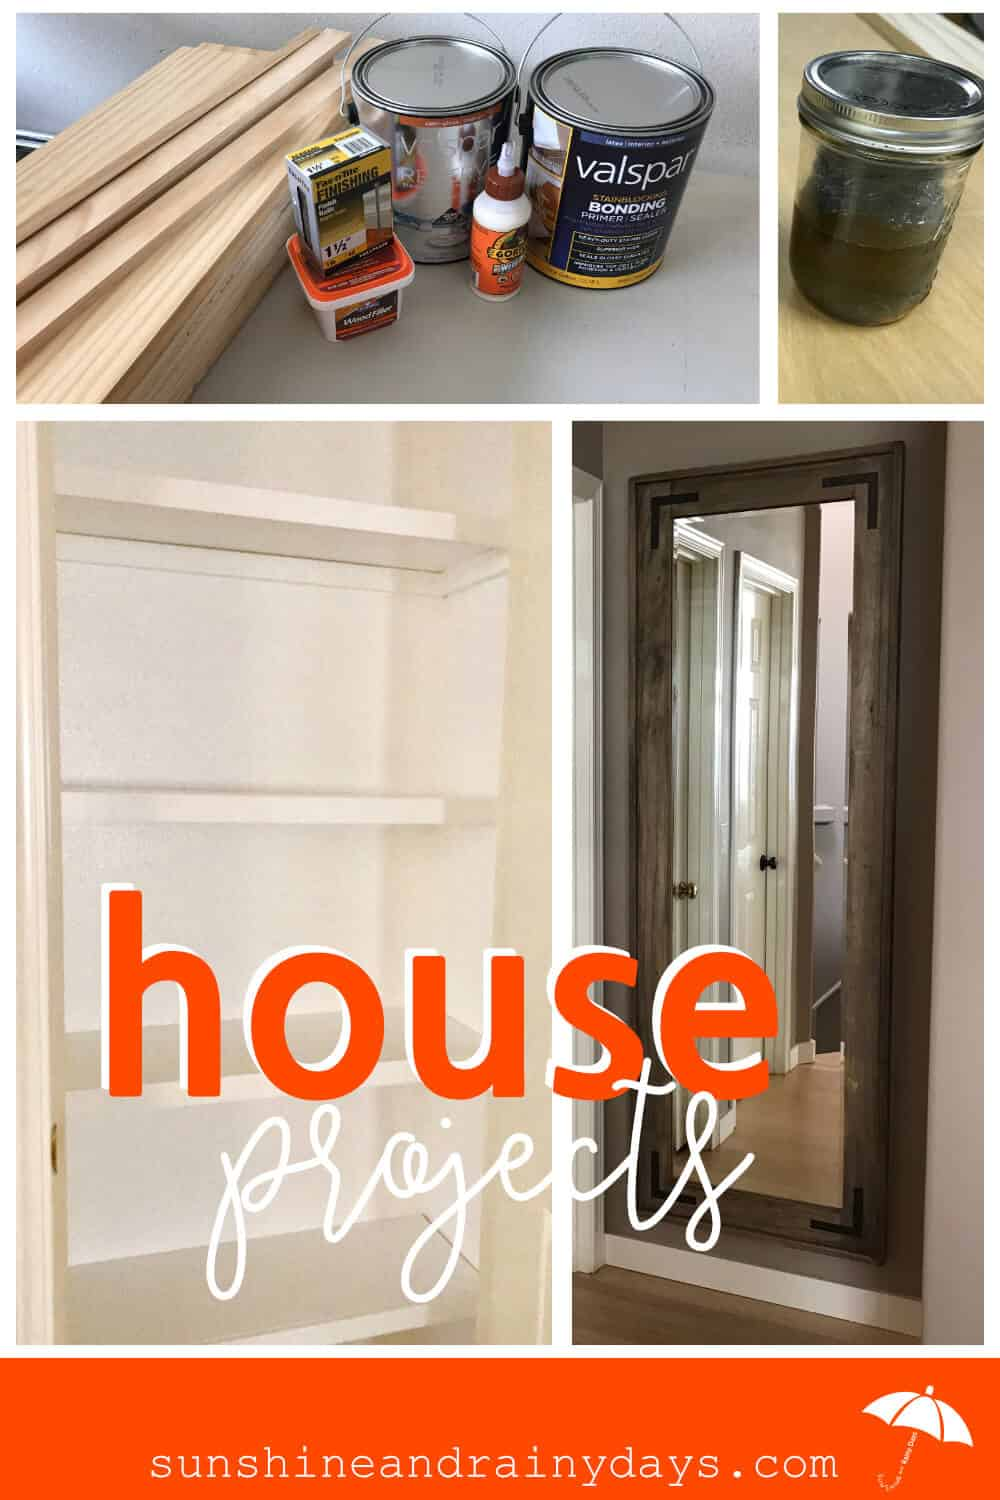 House Projects may seem daunting but once you tackle one, you'll be ready to use your creativity to keep going! House Projects DIY | House Projects Decor | House Projects Ideas | House Projects Wooden | House Projects Small | House Projects Indoor | House Projects Easy